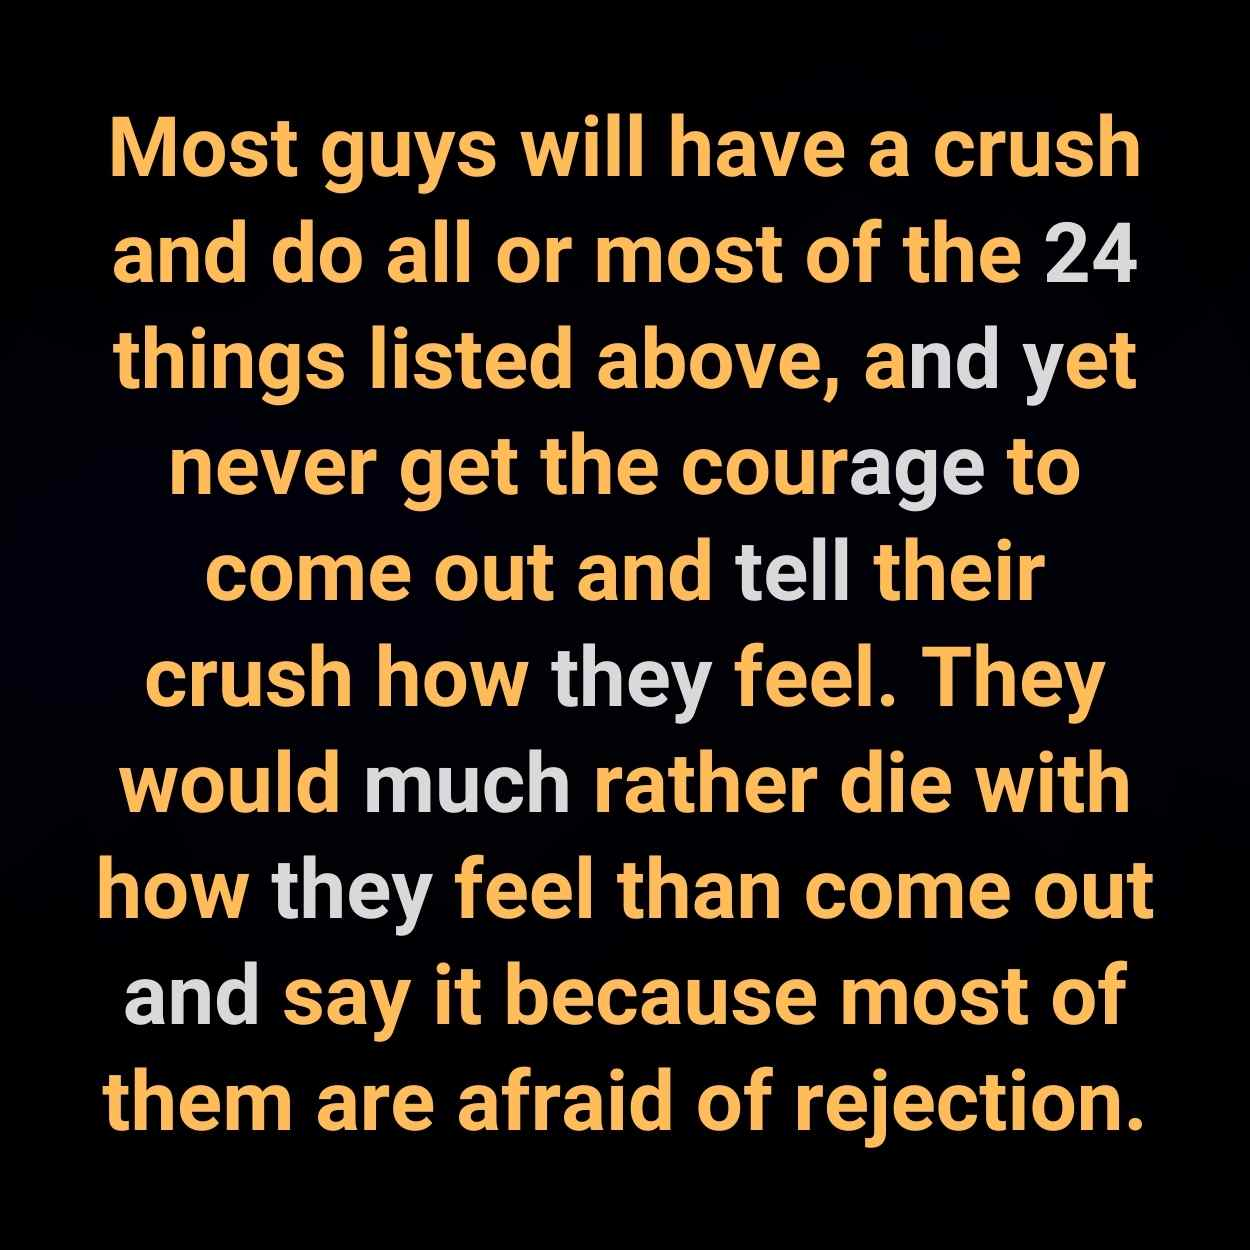 Most guys will have a crush and do all or most of the 24 things listed above, and yet never get the courage to come out and tell their crush how they feel. They would much rather die with how they feel than come out and say it because most of them are afraid of rejection.